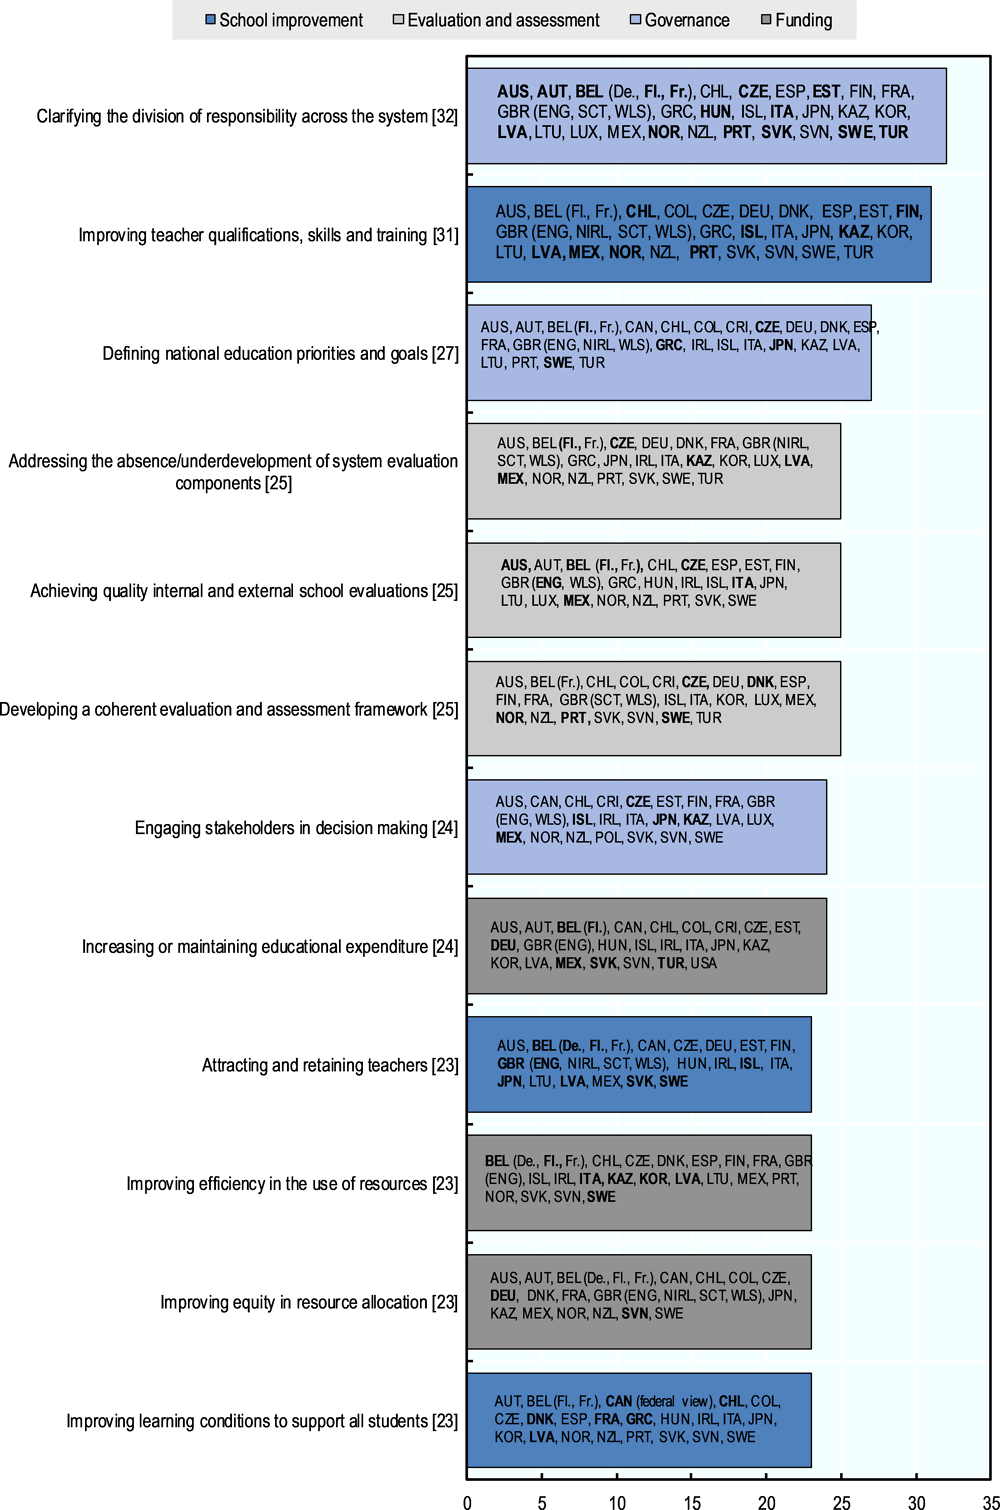 Figure 1. Main policy priorities identified in participating education systems by OECD or governments, 2008-19